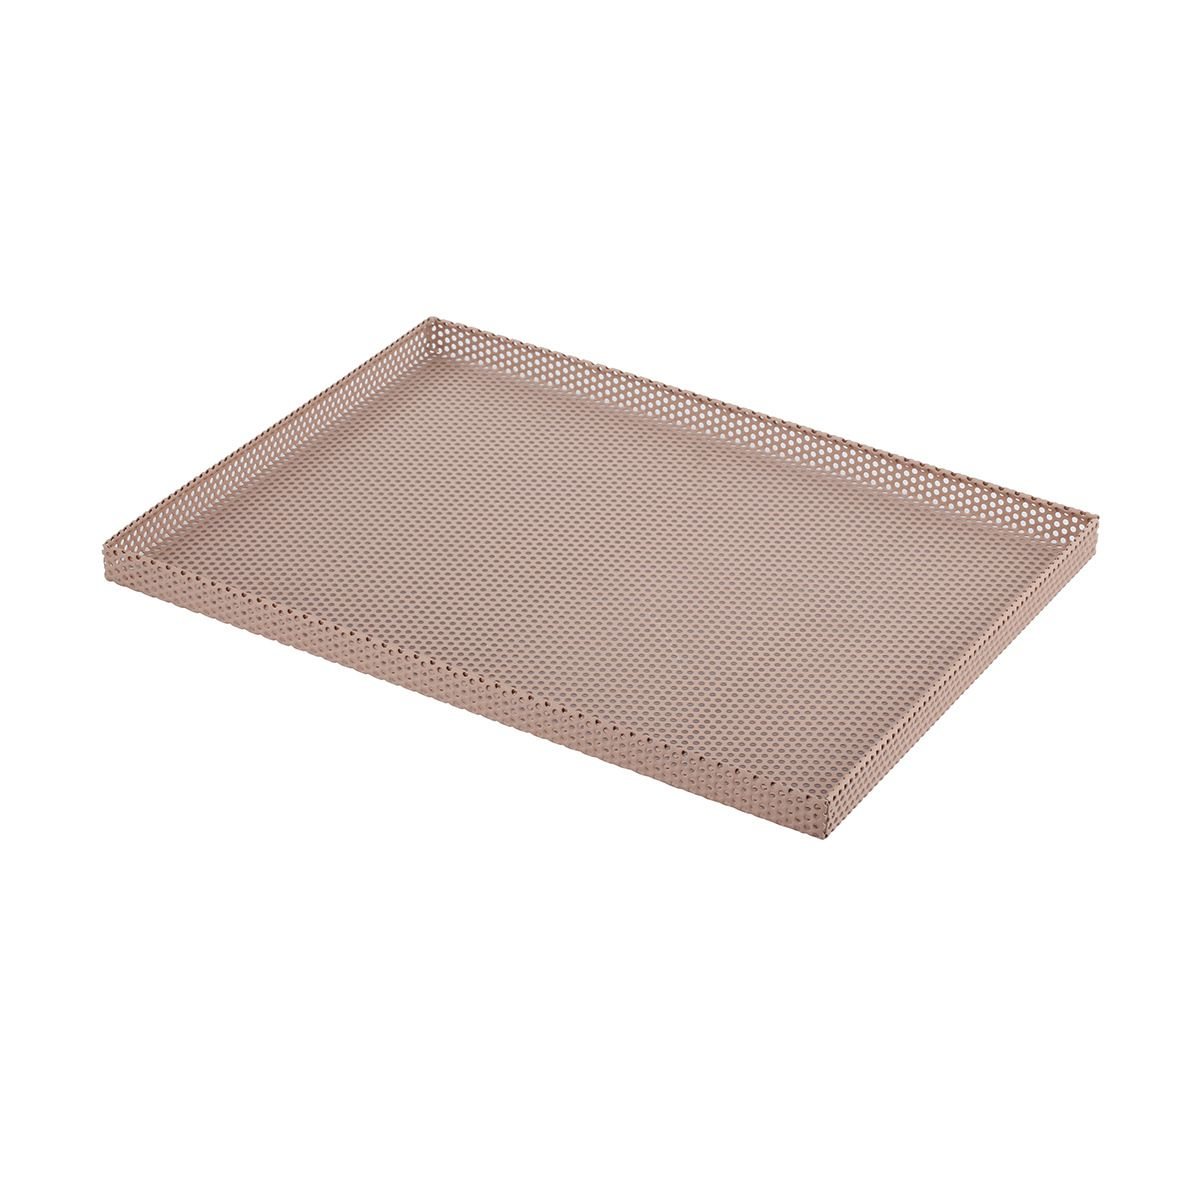 Perforated Tray Kmart Pink Tray Lady Boss Office Perforated